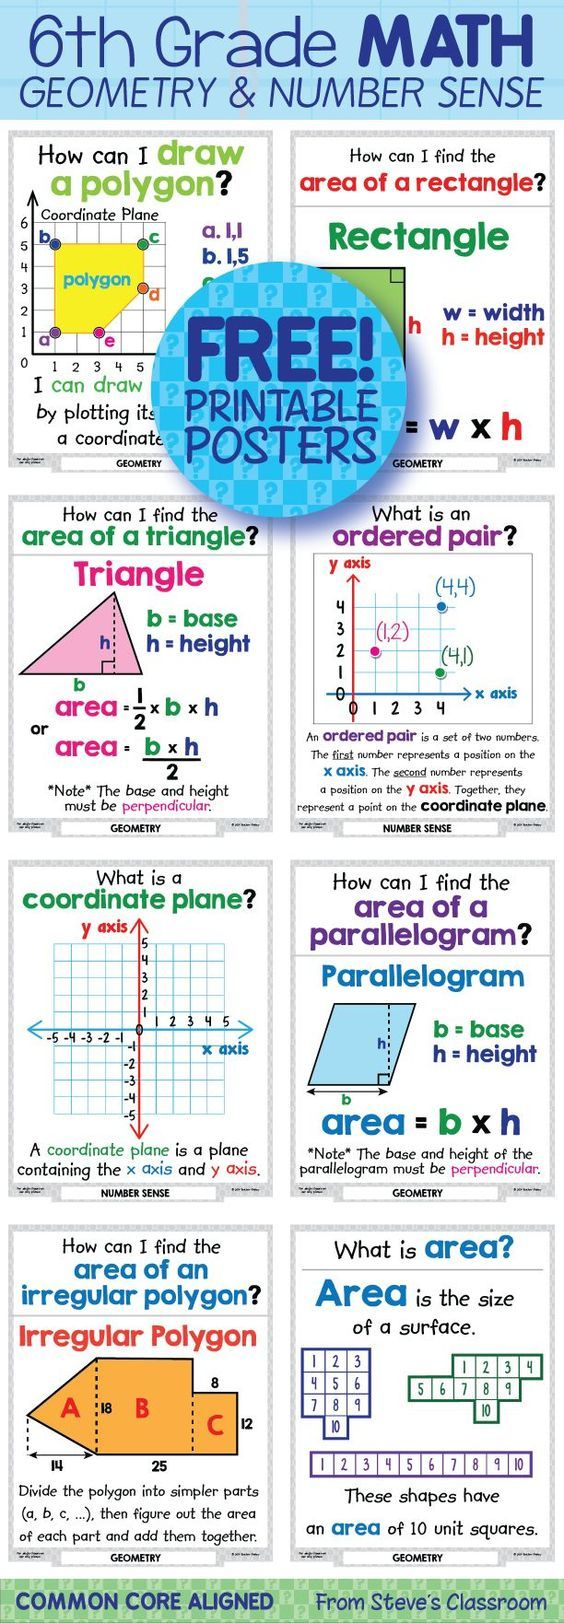 Free Printable Math Posters: Area Of A Triangle, Coordinate Plane, And Draw  A